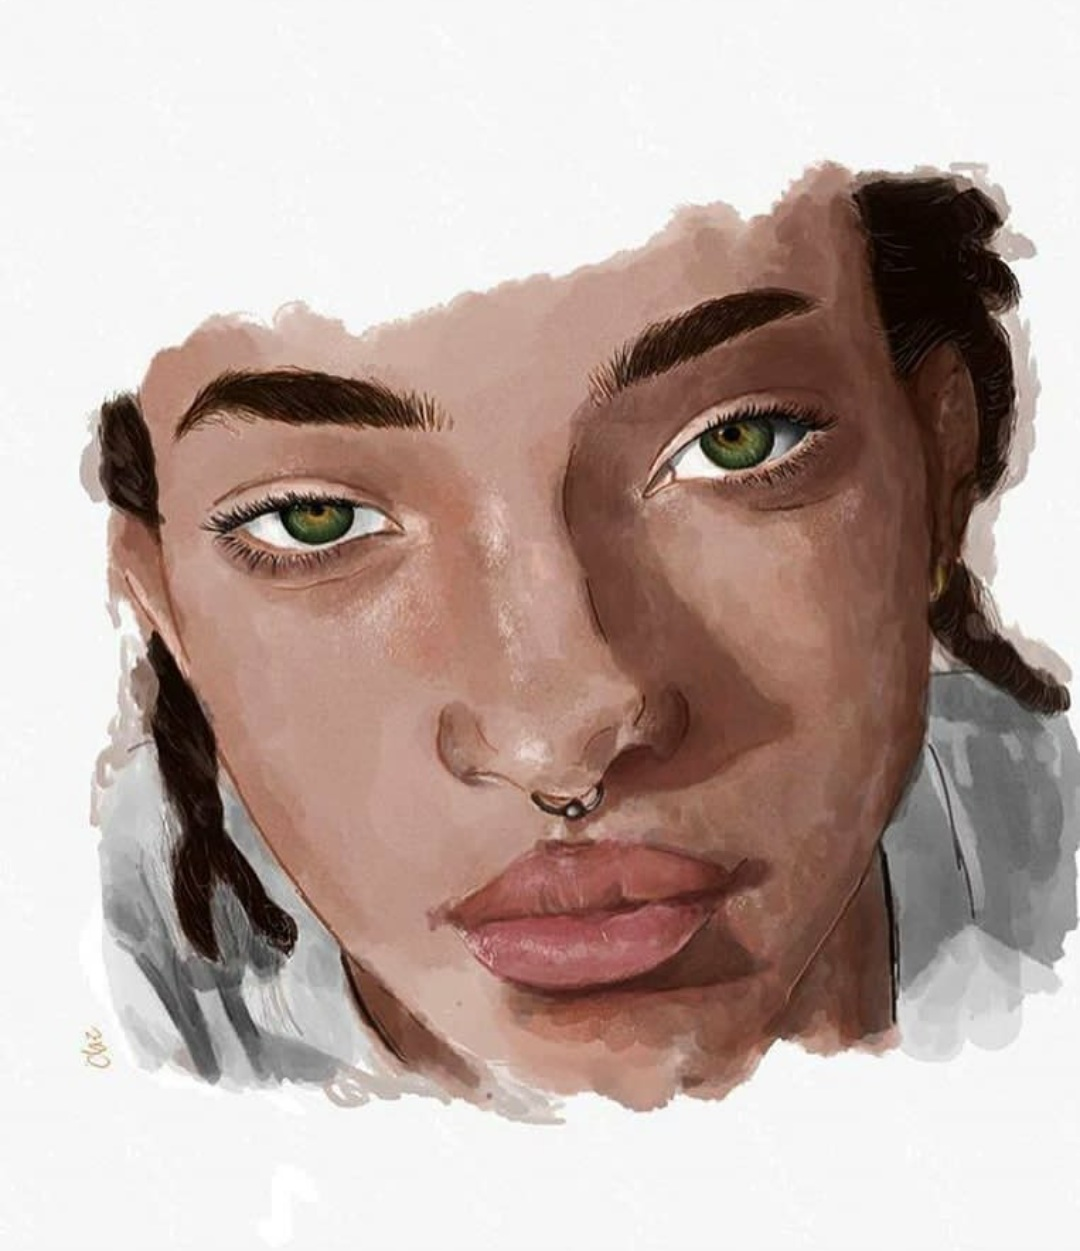 art, drawing, illustration, inspire, willow smith